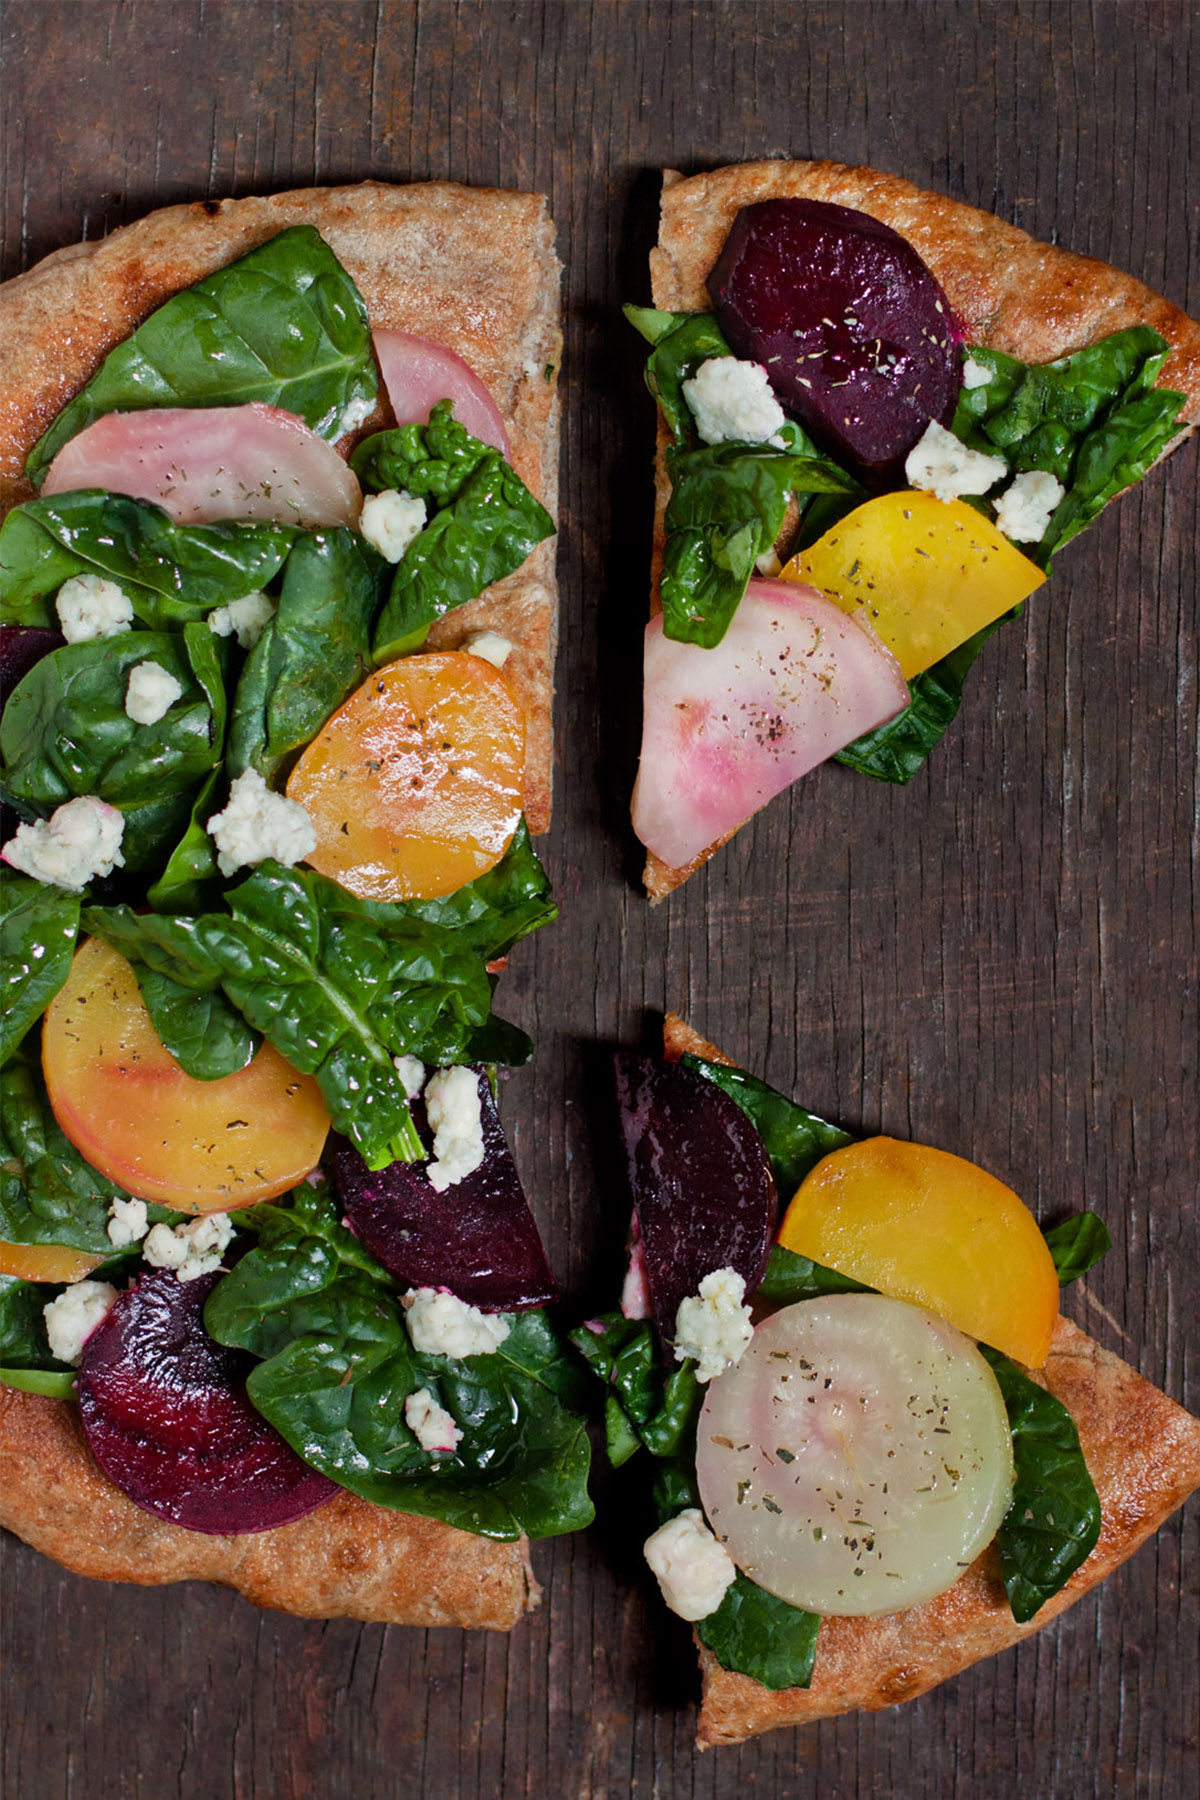 Beet and Spinach Pizza with Gorgonzola Cheese